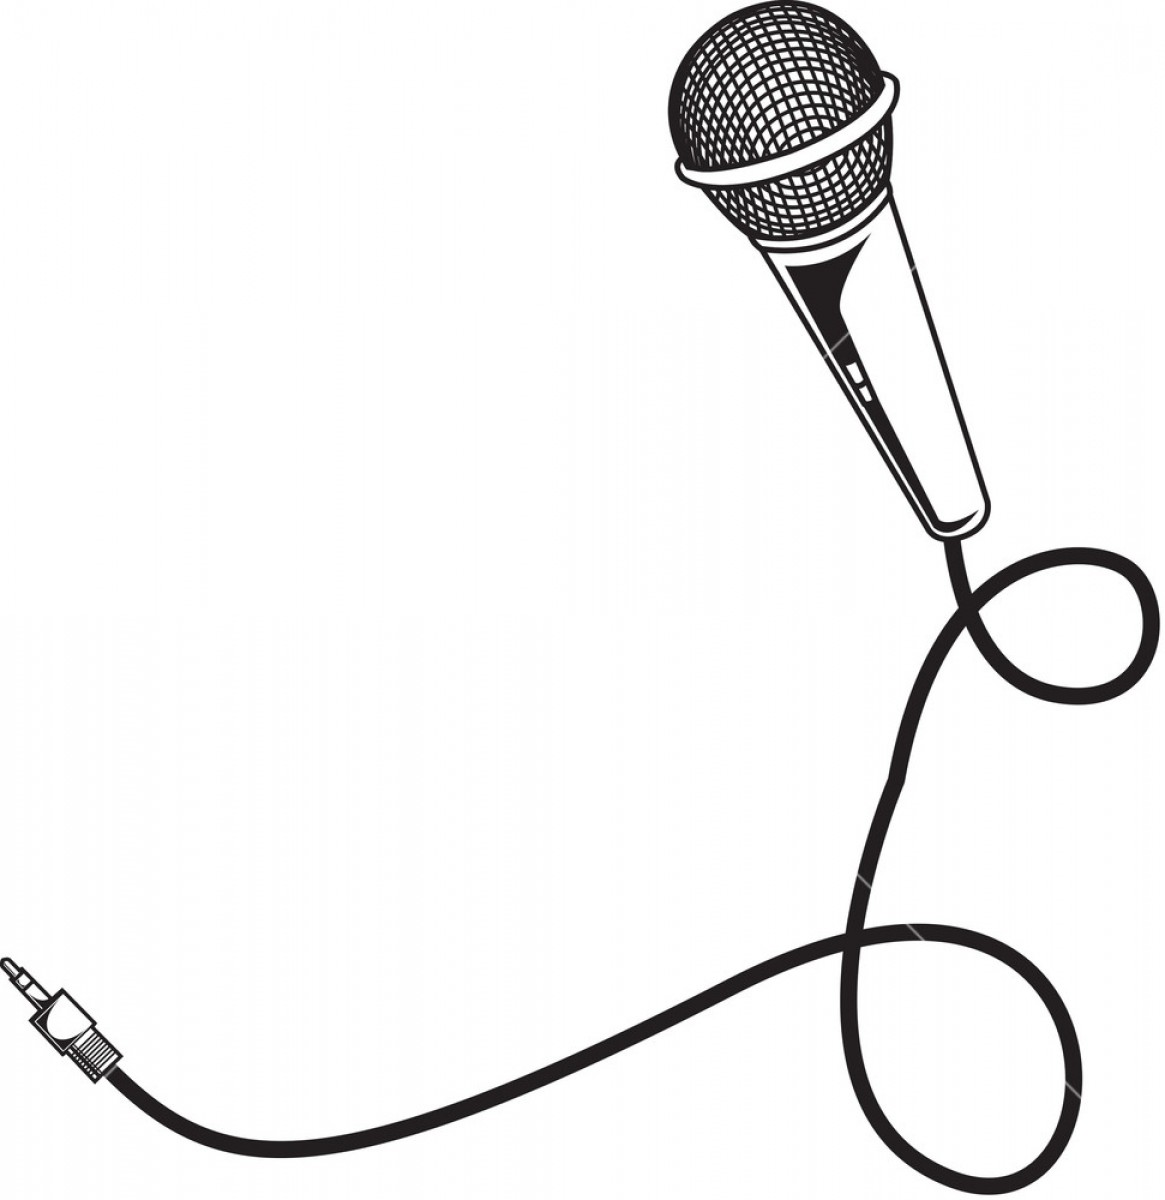 Microphone vector clipart clip art library download Microphone Vector Element With Wire Sdblanexwjgmppgh | SOIDERGI clip art library download